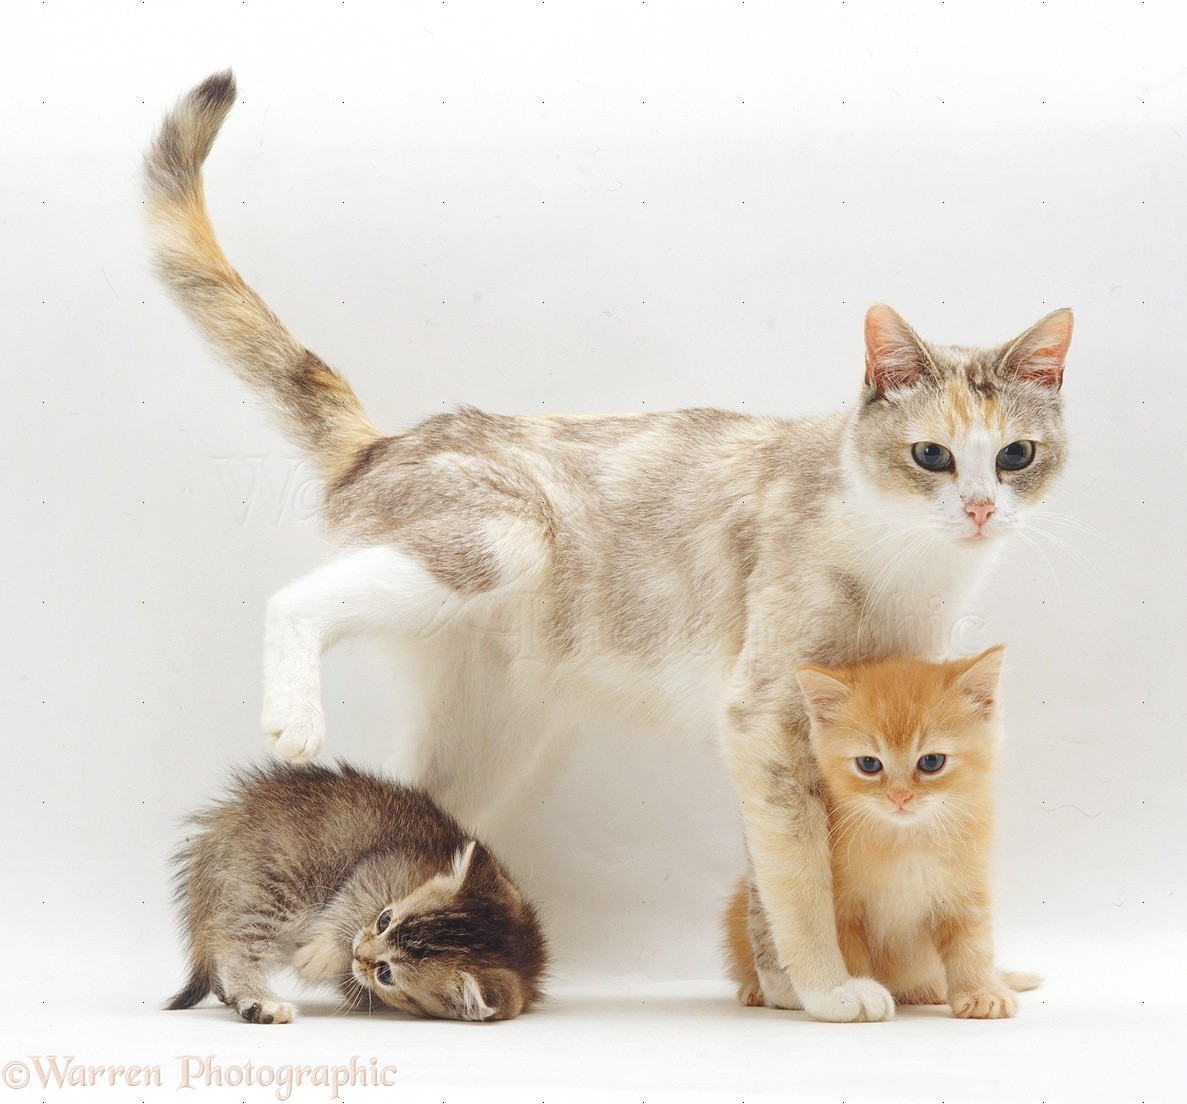 Wp32066 silver tortoiseshell and white mother cat pearl with two